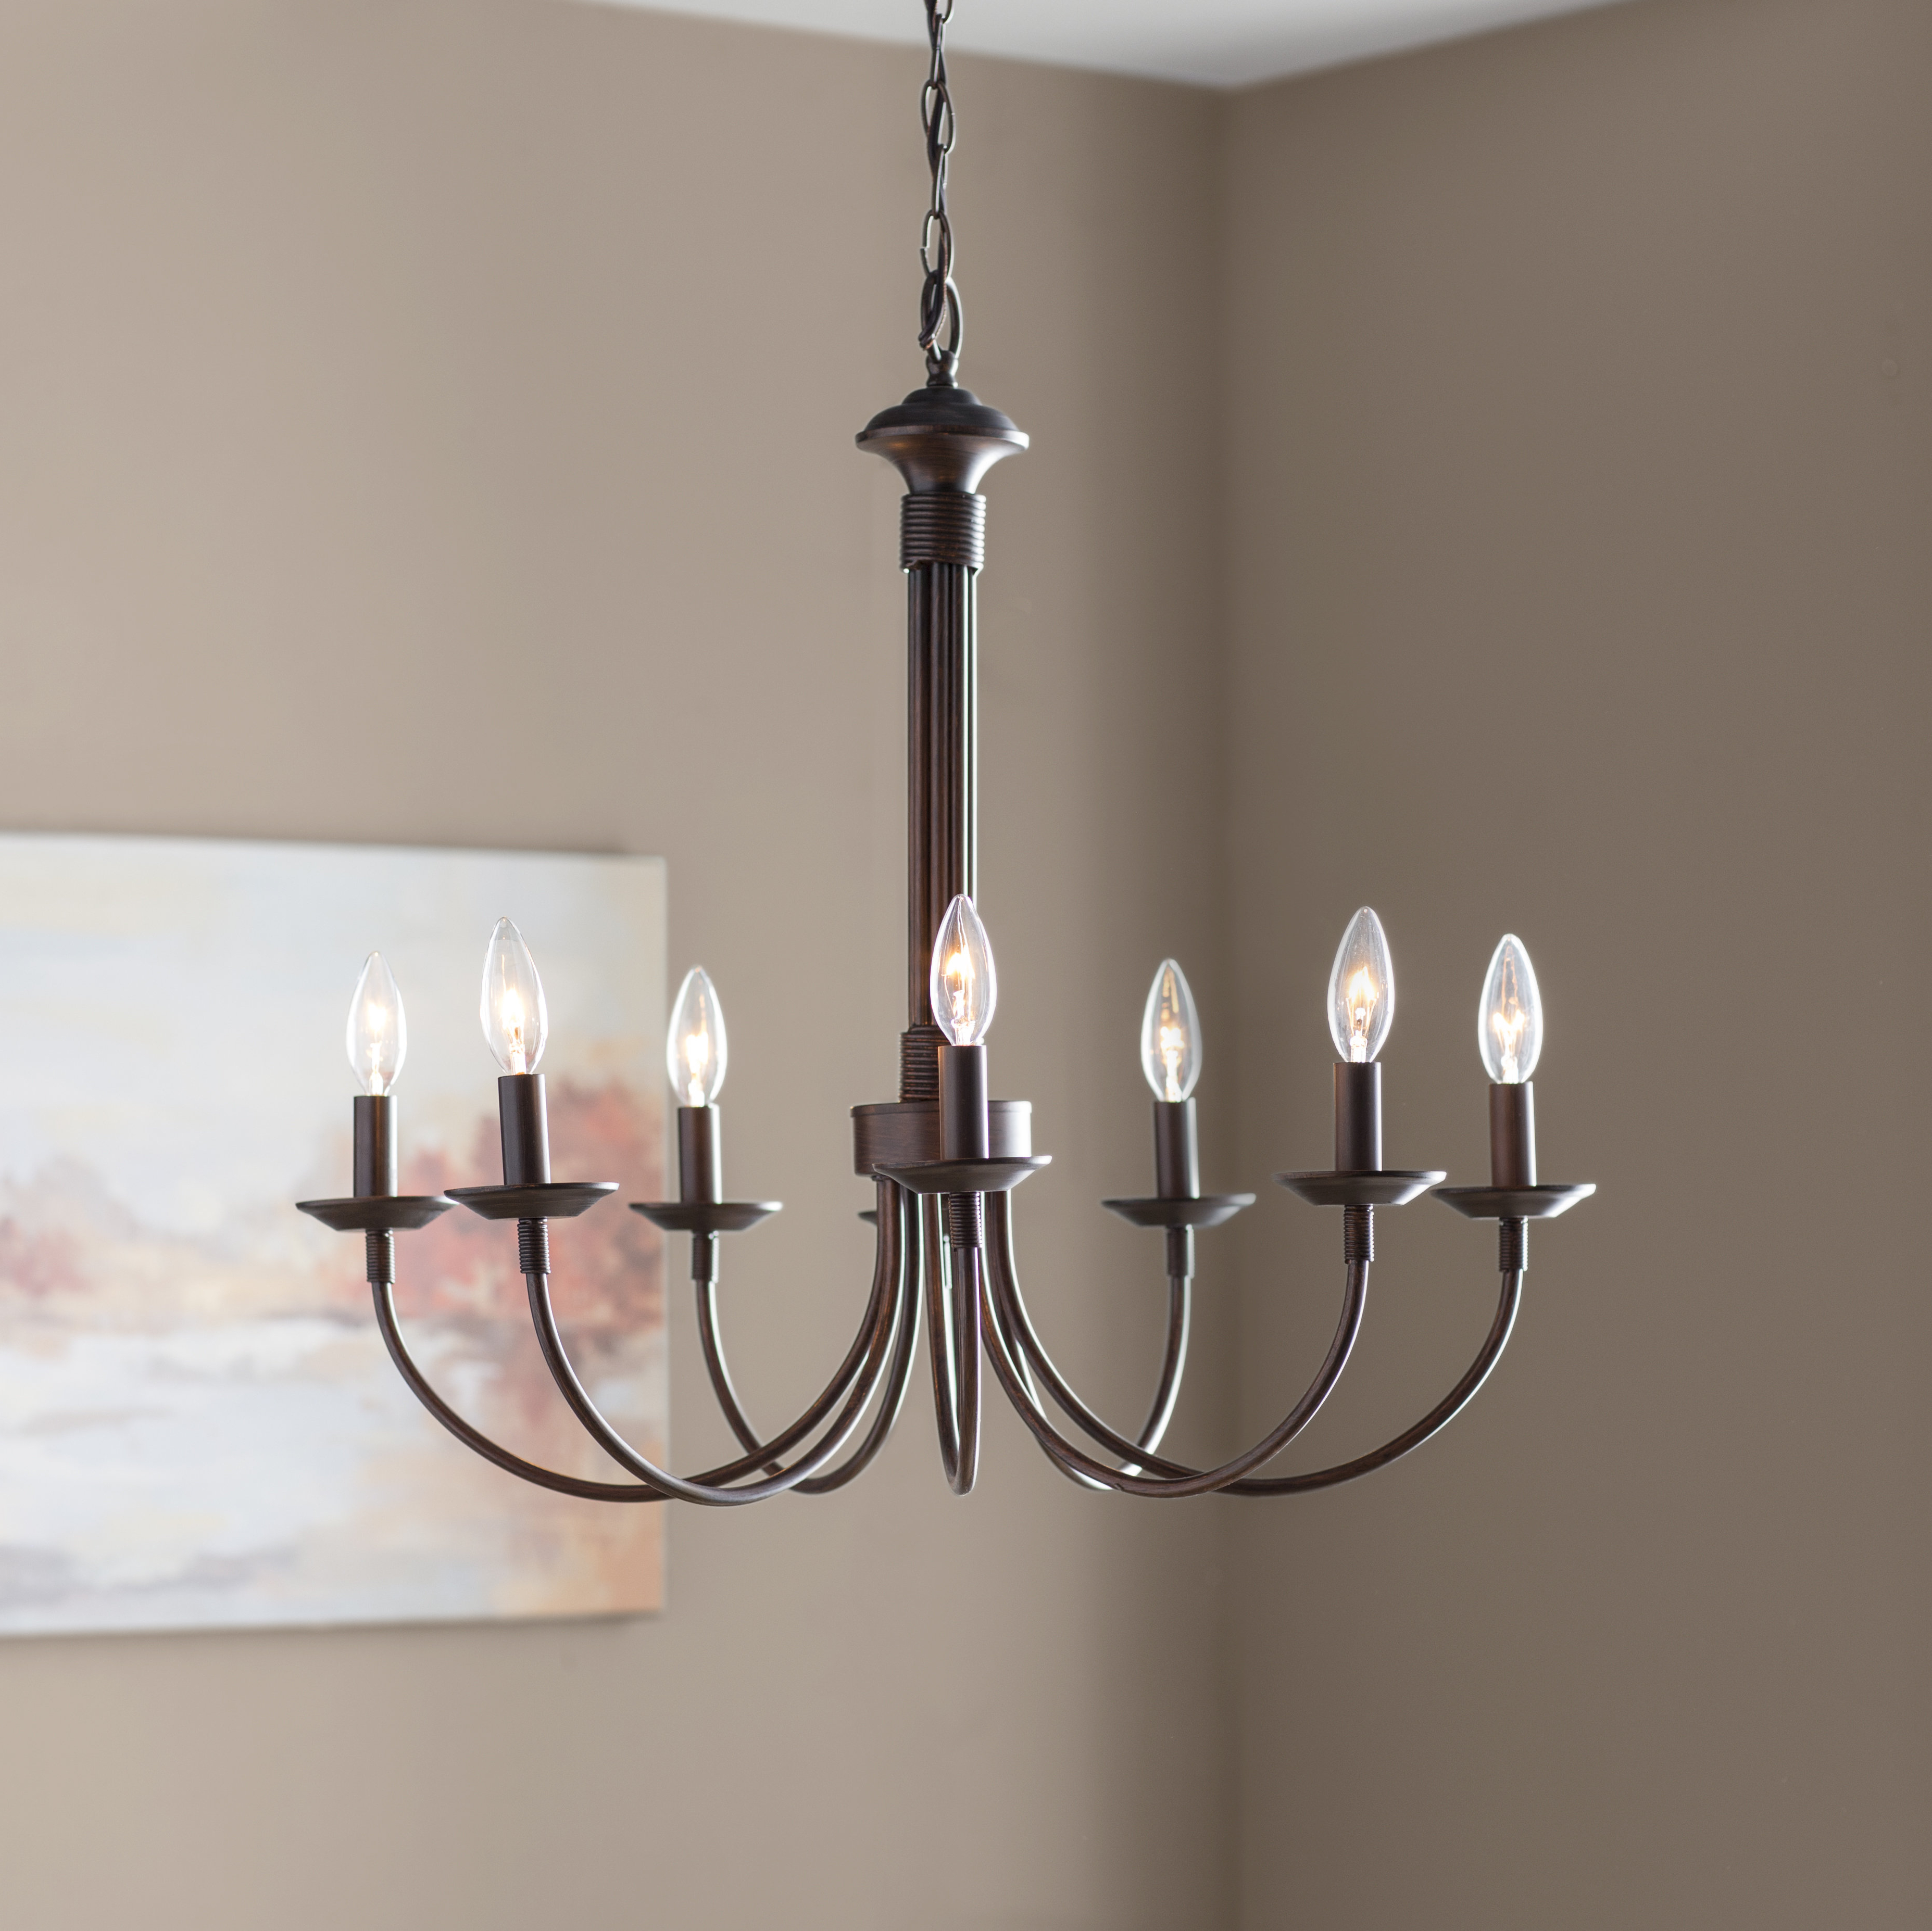 Shaylee 8 Light Candle Style Chandelier With Regard To Preferred Giverny 9 Light Candle Style Chandeliers (Gallery 19 of 20)